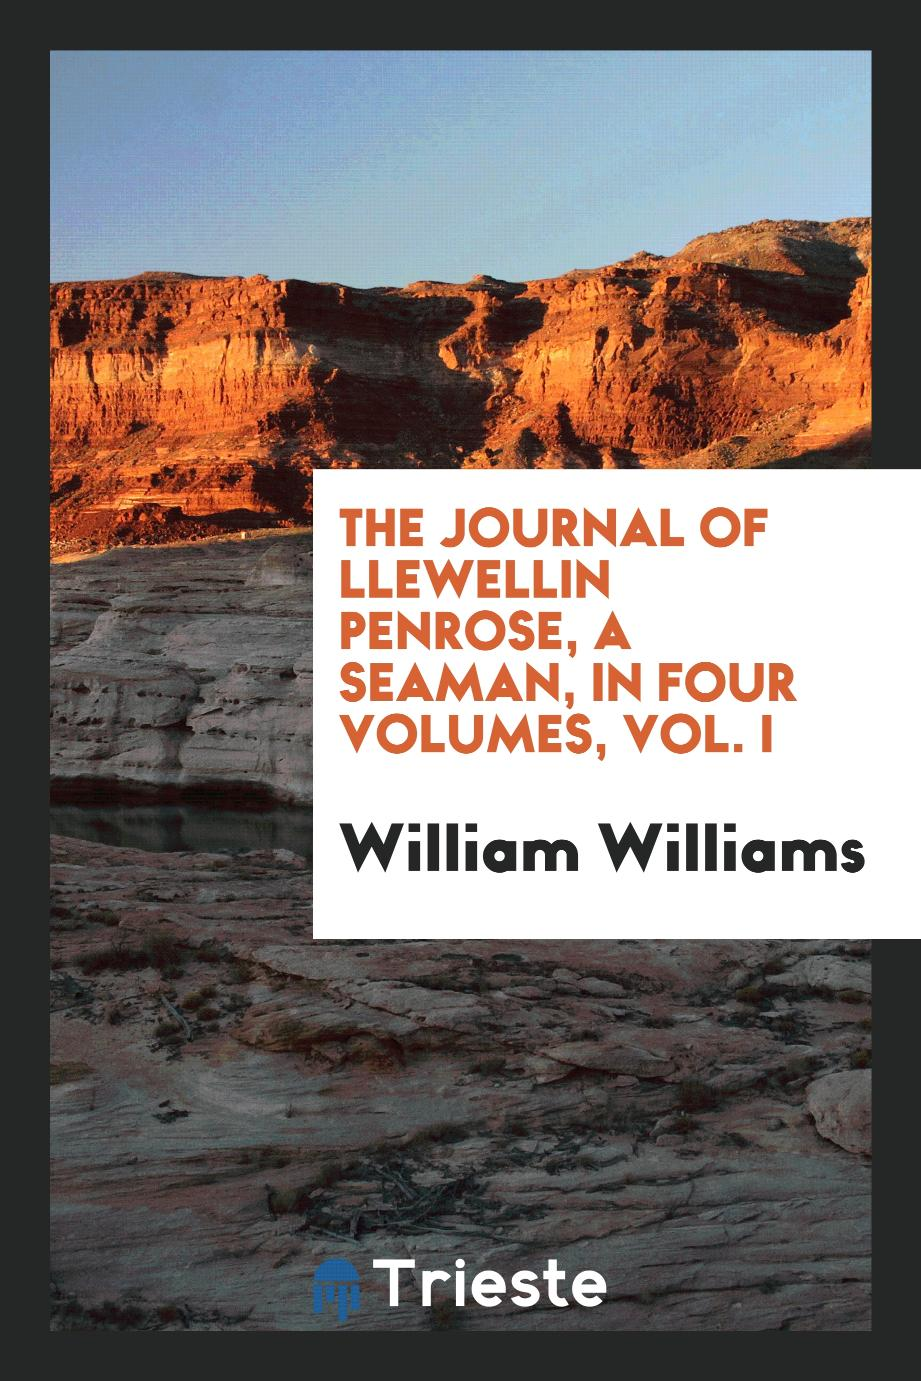 The journal of Llewellin Penrose, a seaman, In four volumes, Vol. I